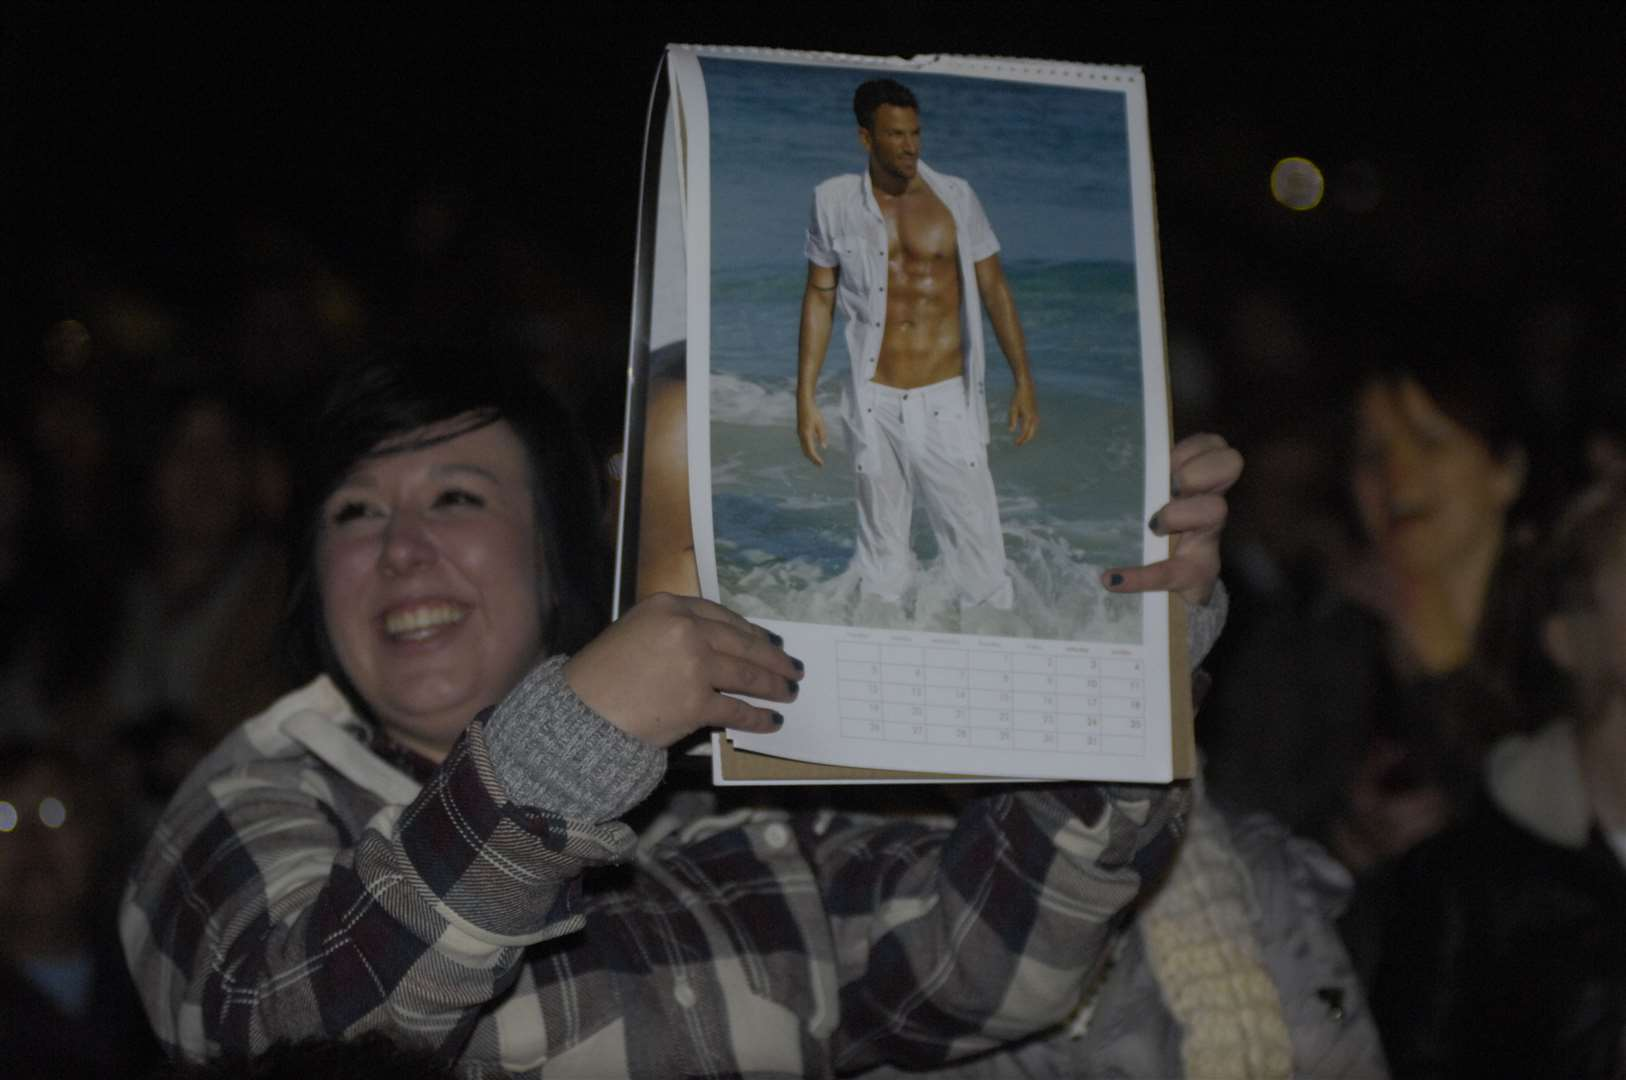 Fans were excited to see Peter Andre at the site in 2011